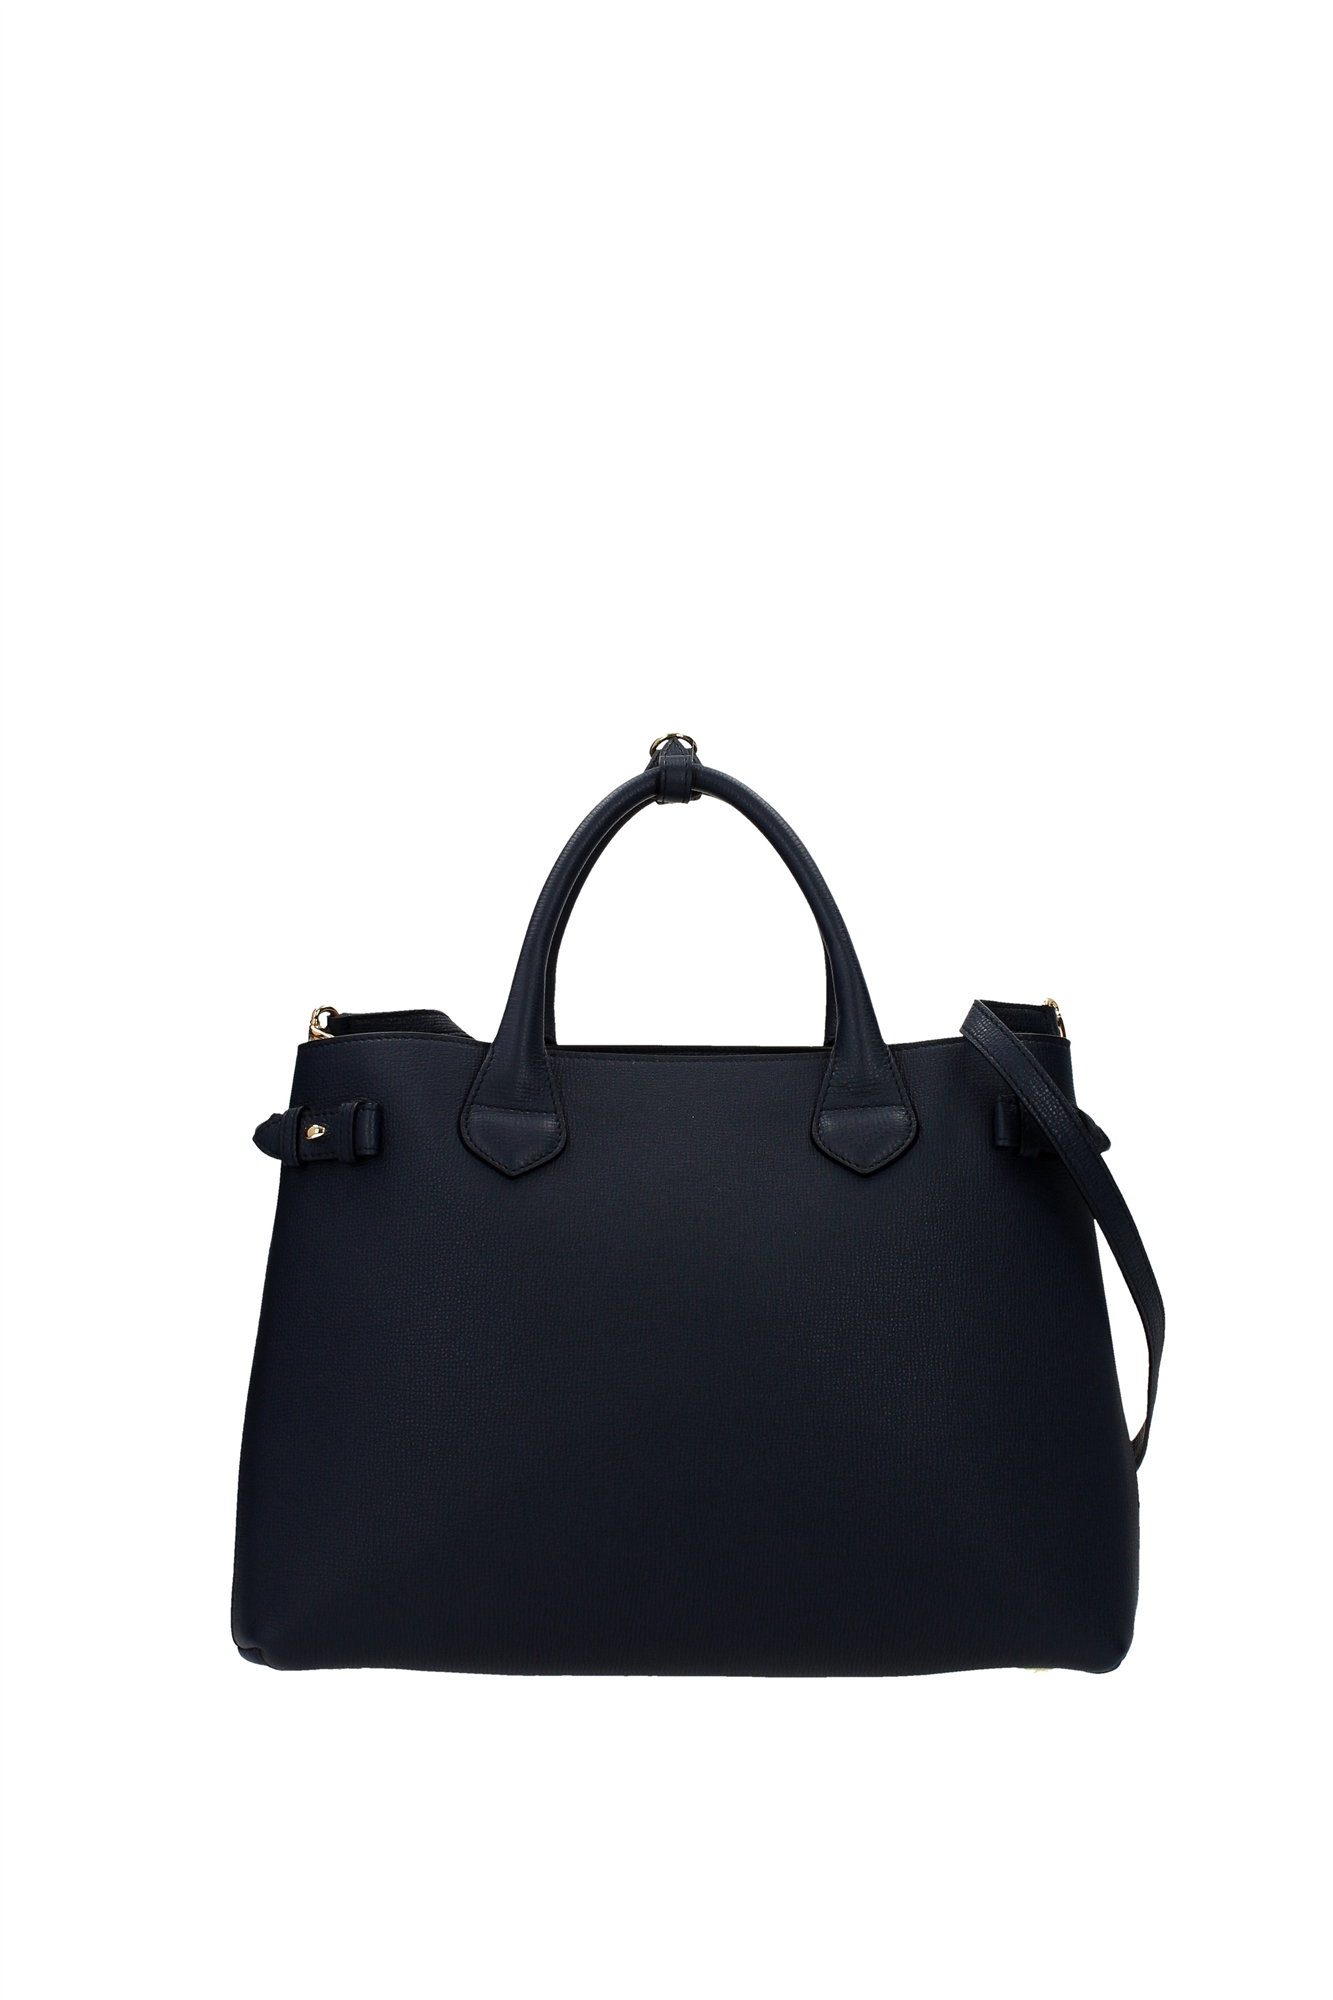 Hand Bags Burberry Women Leather Blue 3983039 | eBay